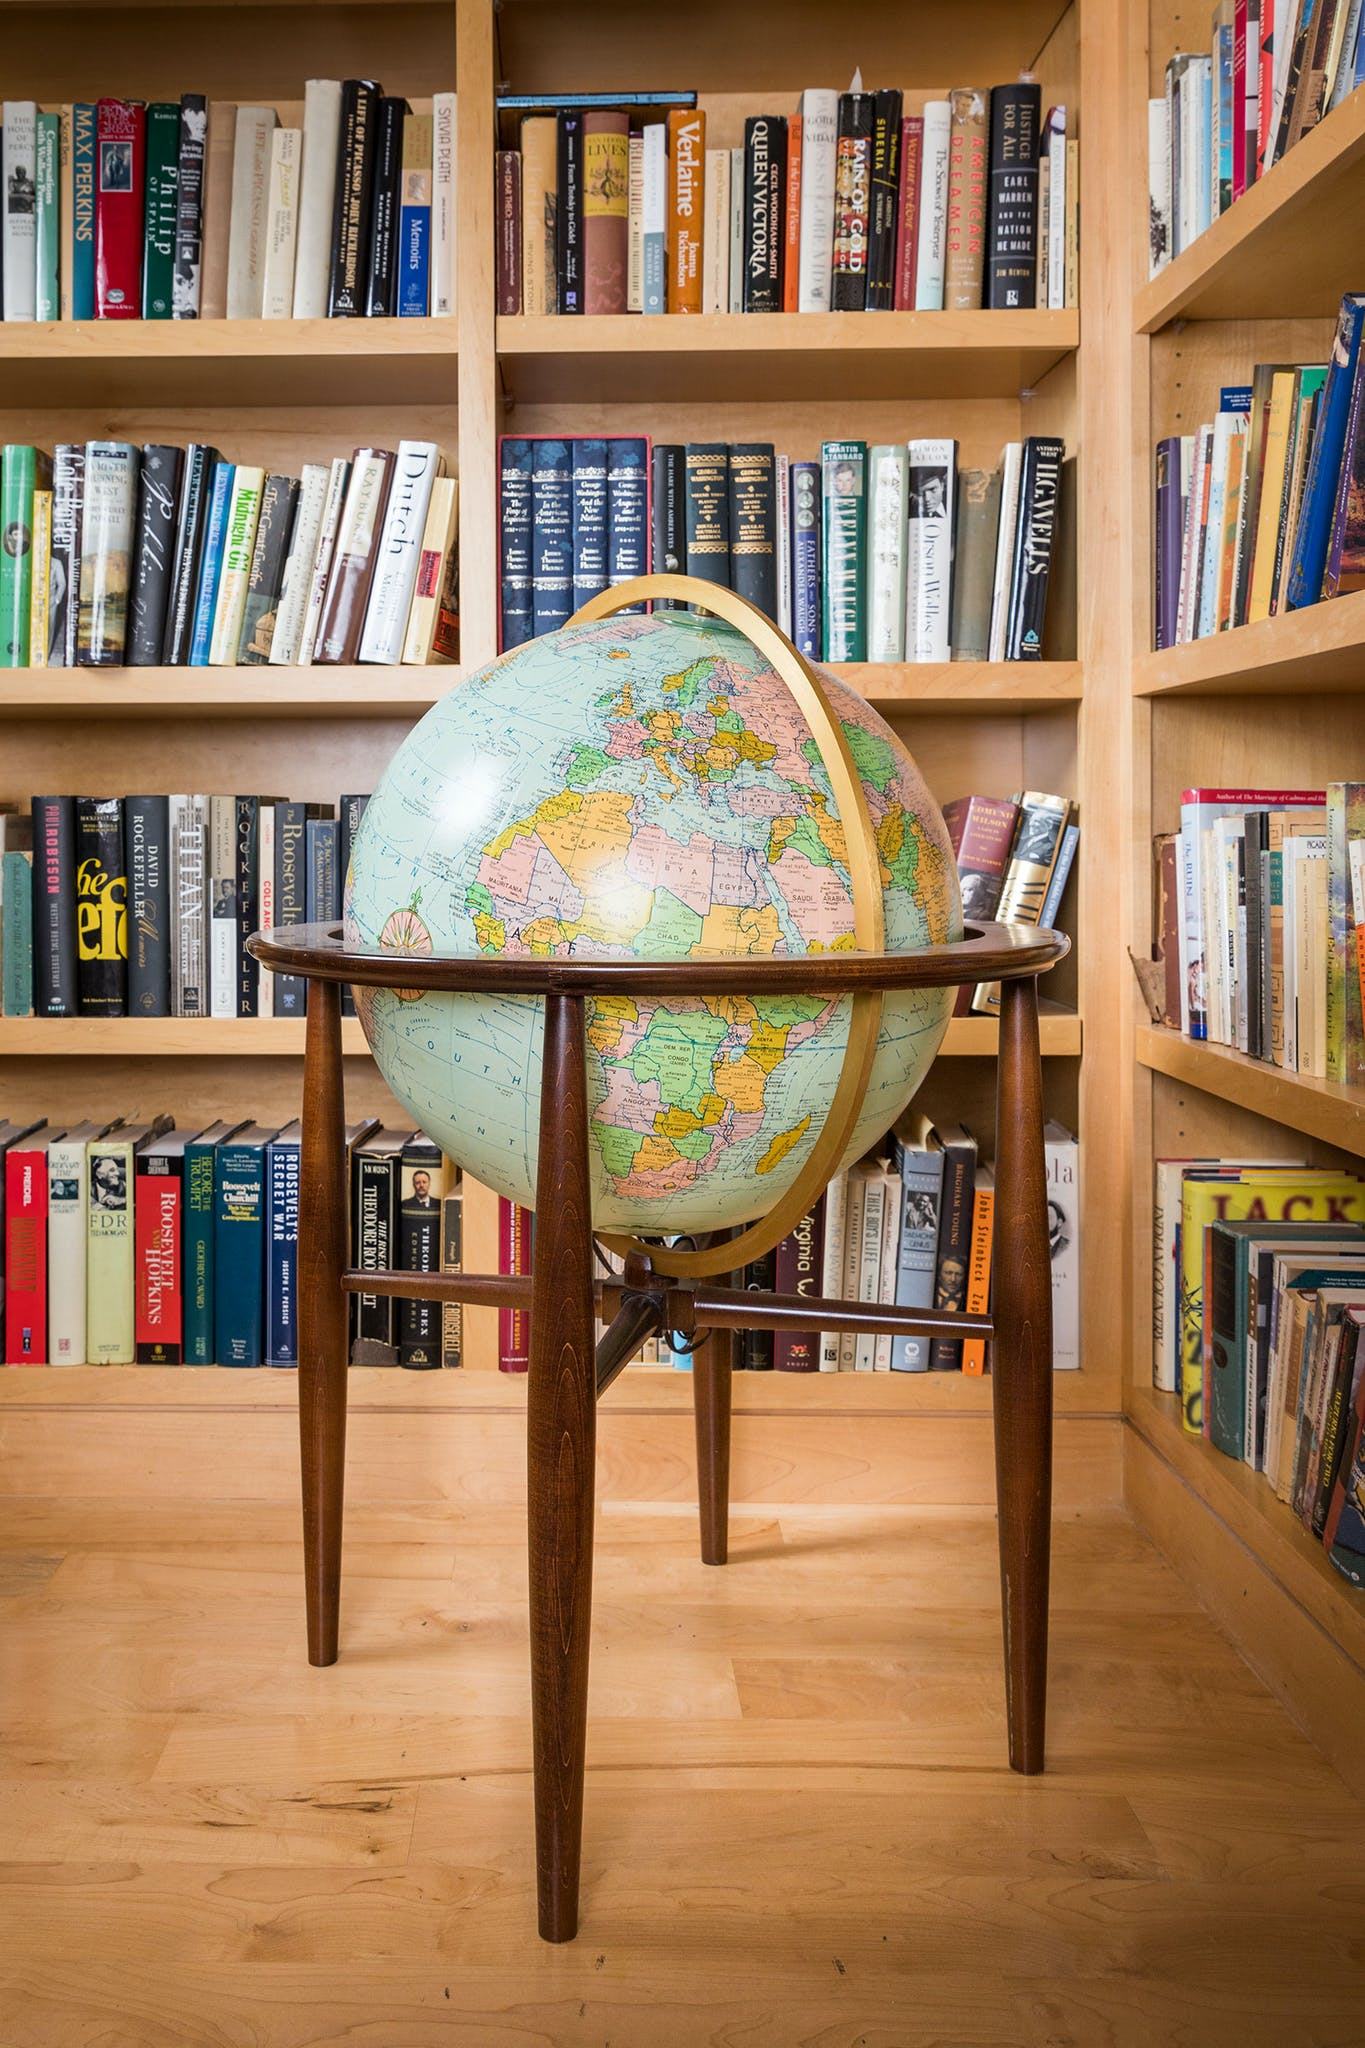 A globe in Melba Whatley's home library in Austin